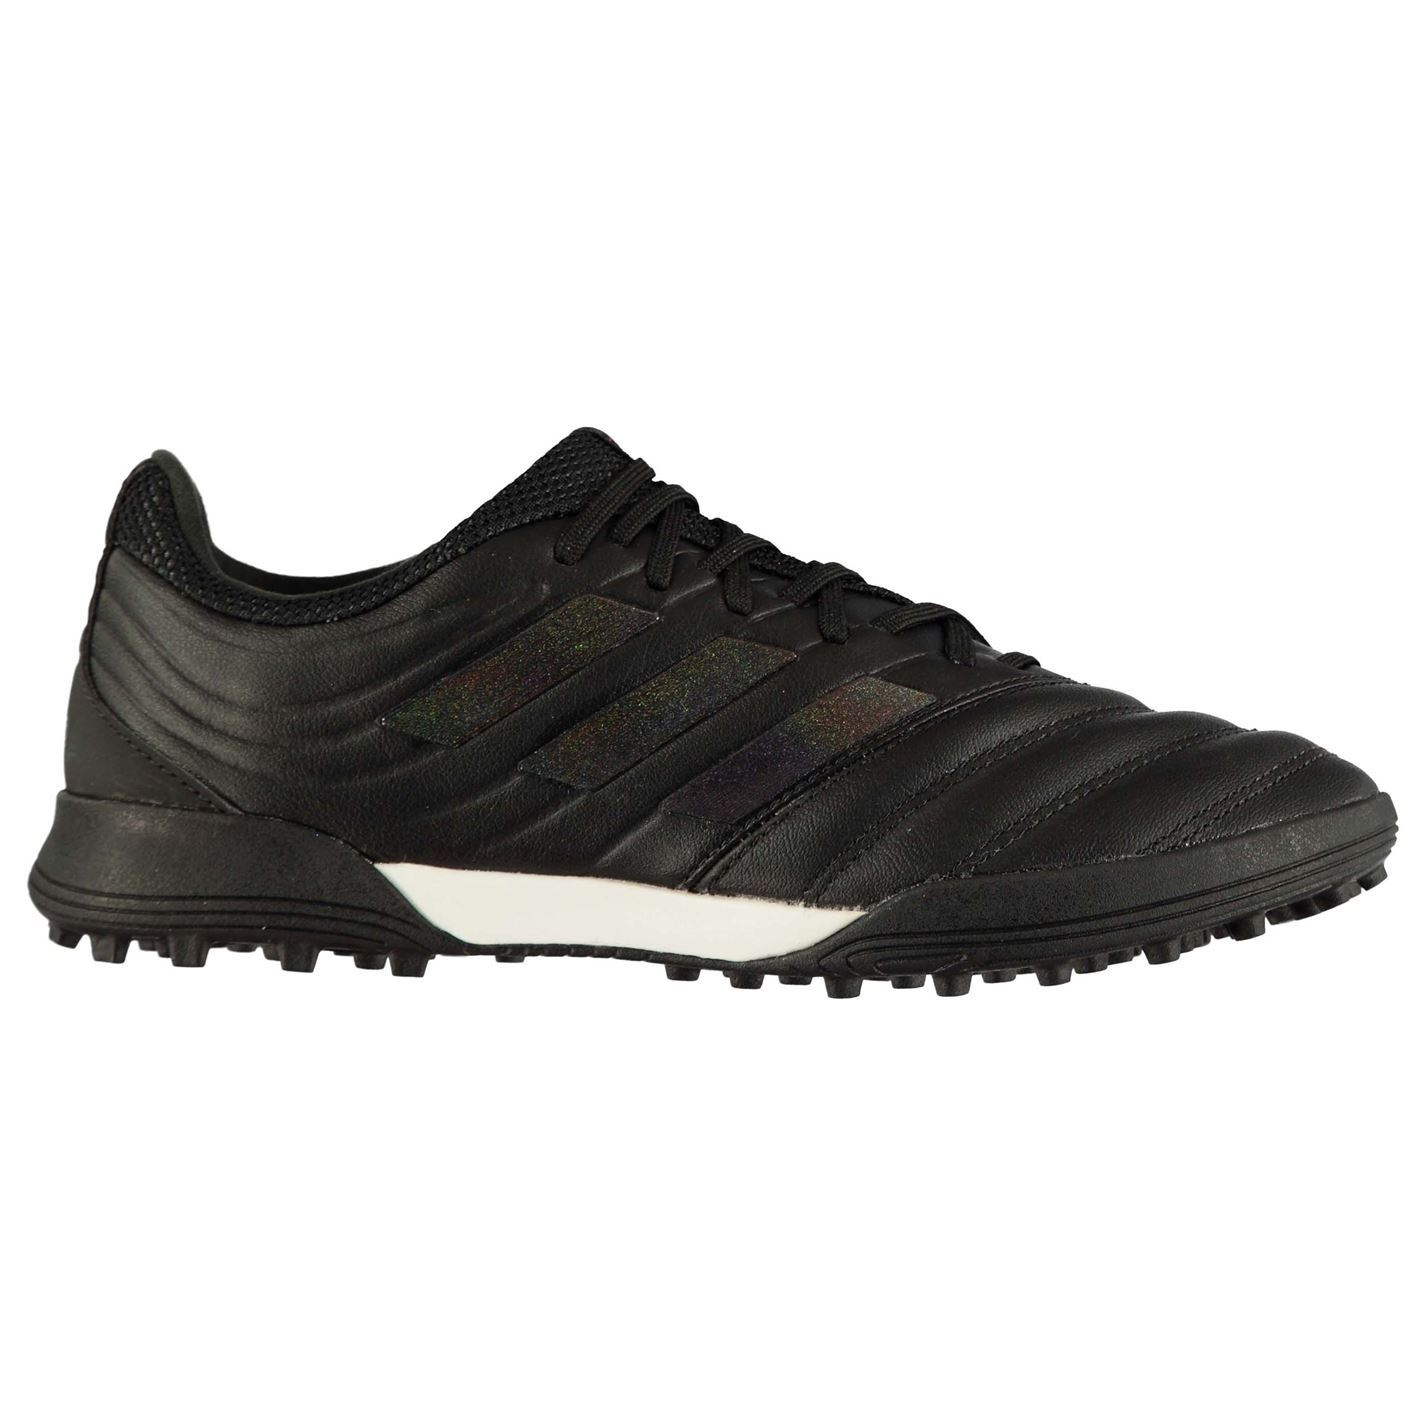 Adidas-Copa-19-3-Astro-Turf-Football-Chaussures-Homme-Football-Entrainement-Baskets miniature 8